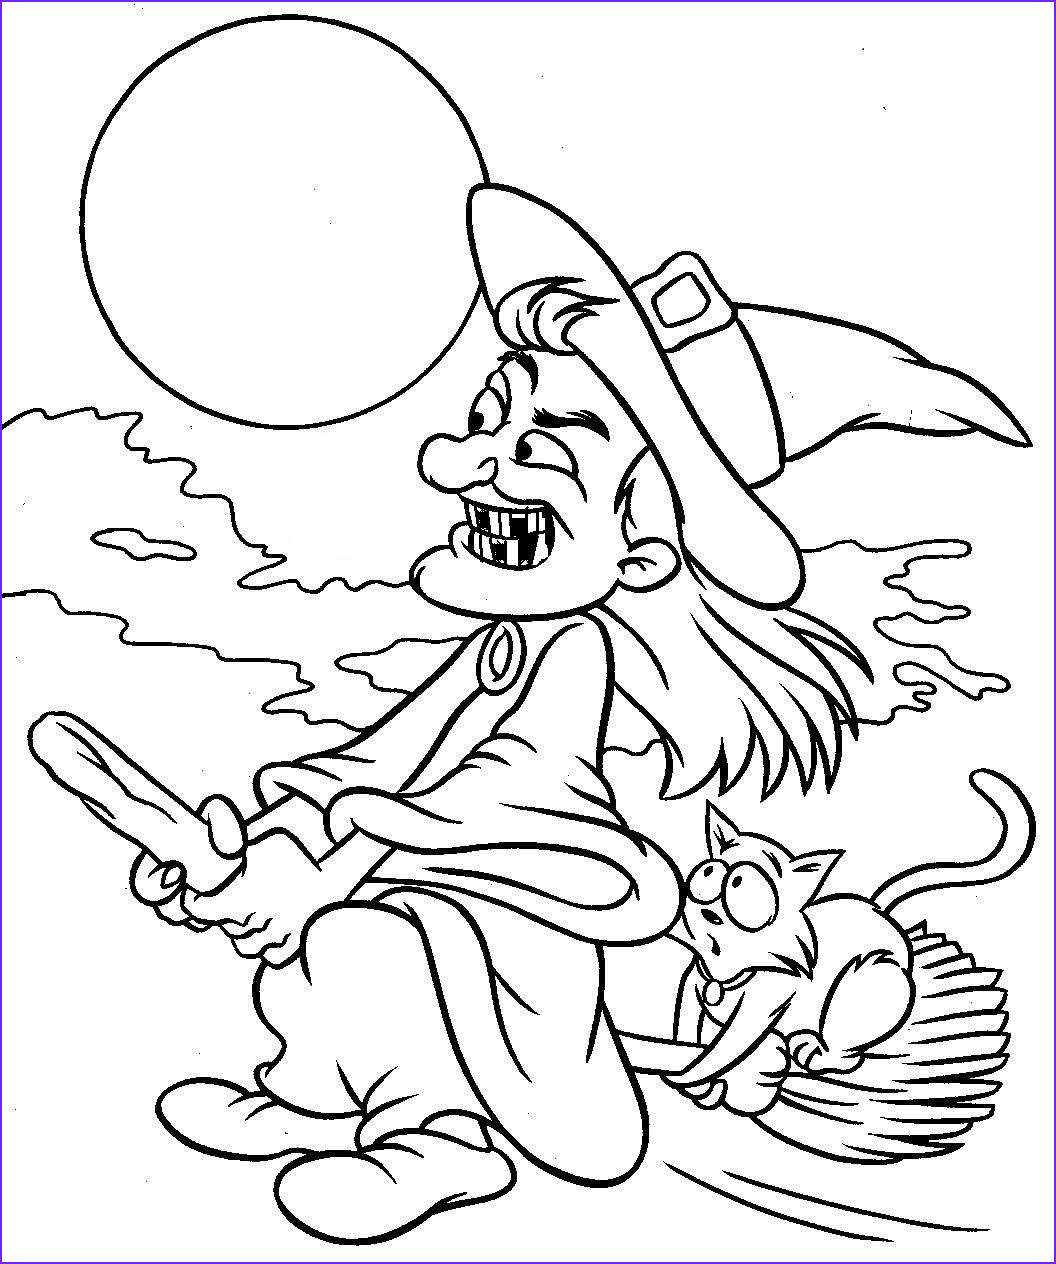 Coloring Pages for Kids Halloween Elegant Images Coloring Halloween Coloring Pics